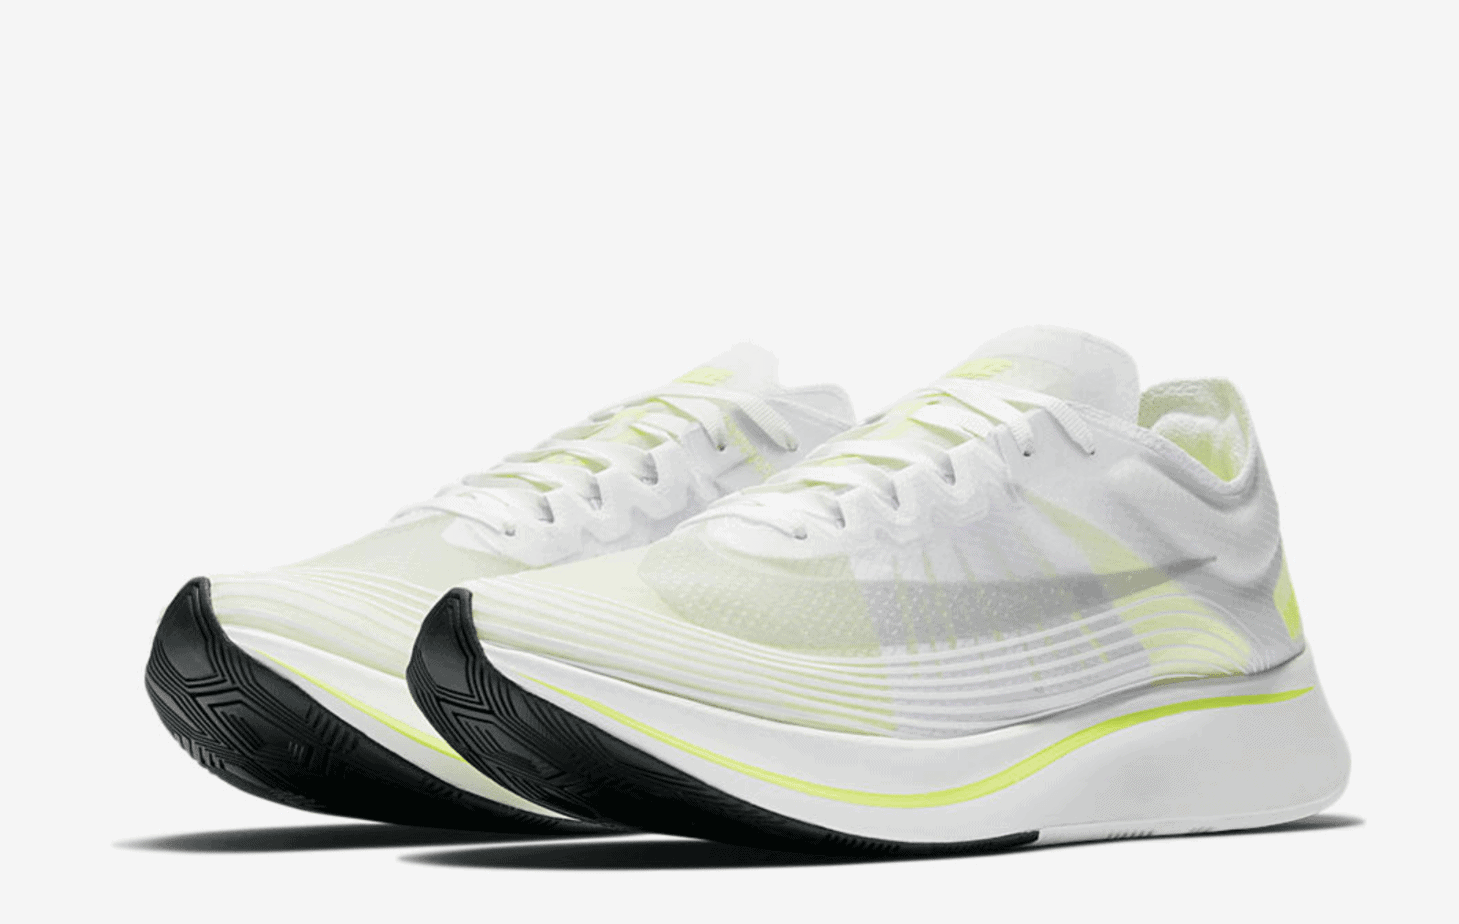 91407fc4de32 Nike Zoom Fly SP